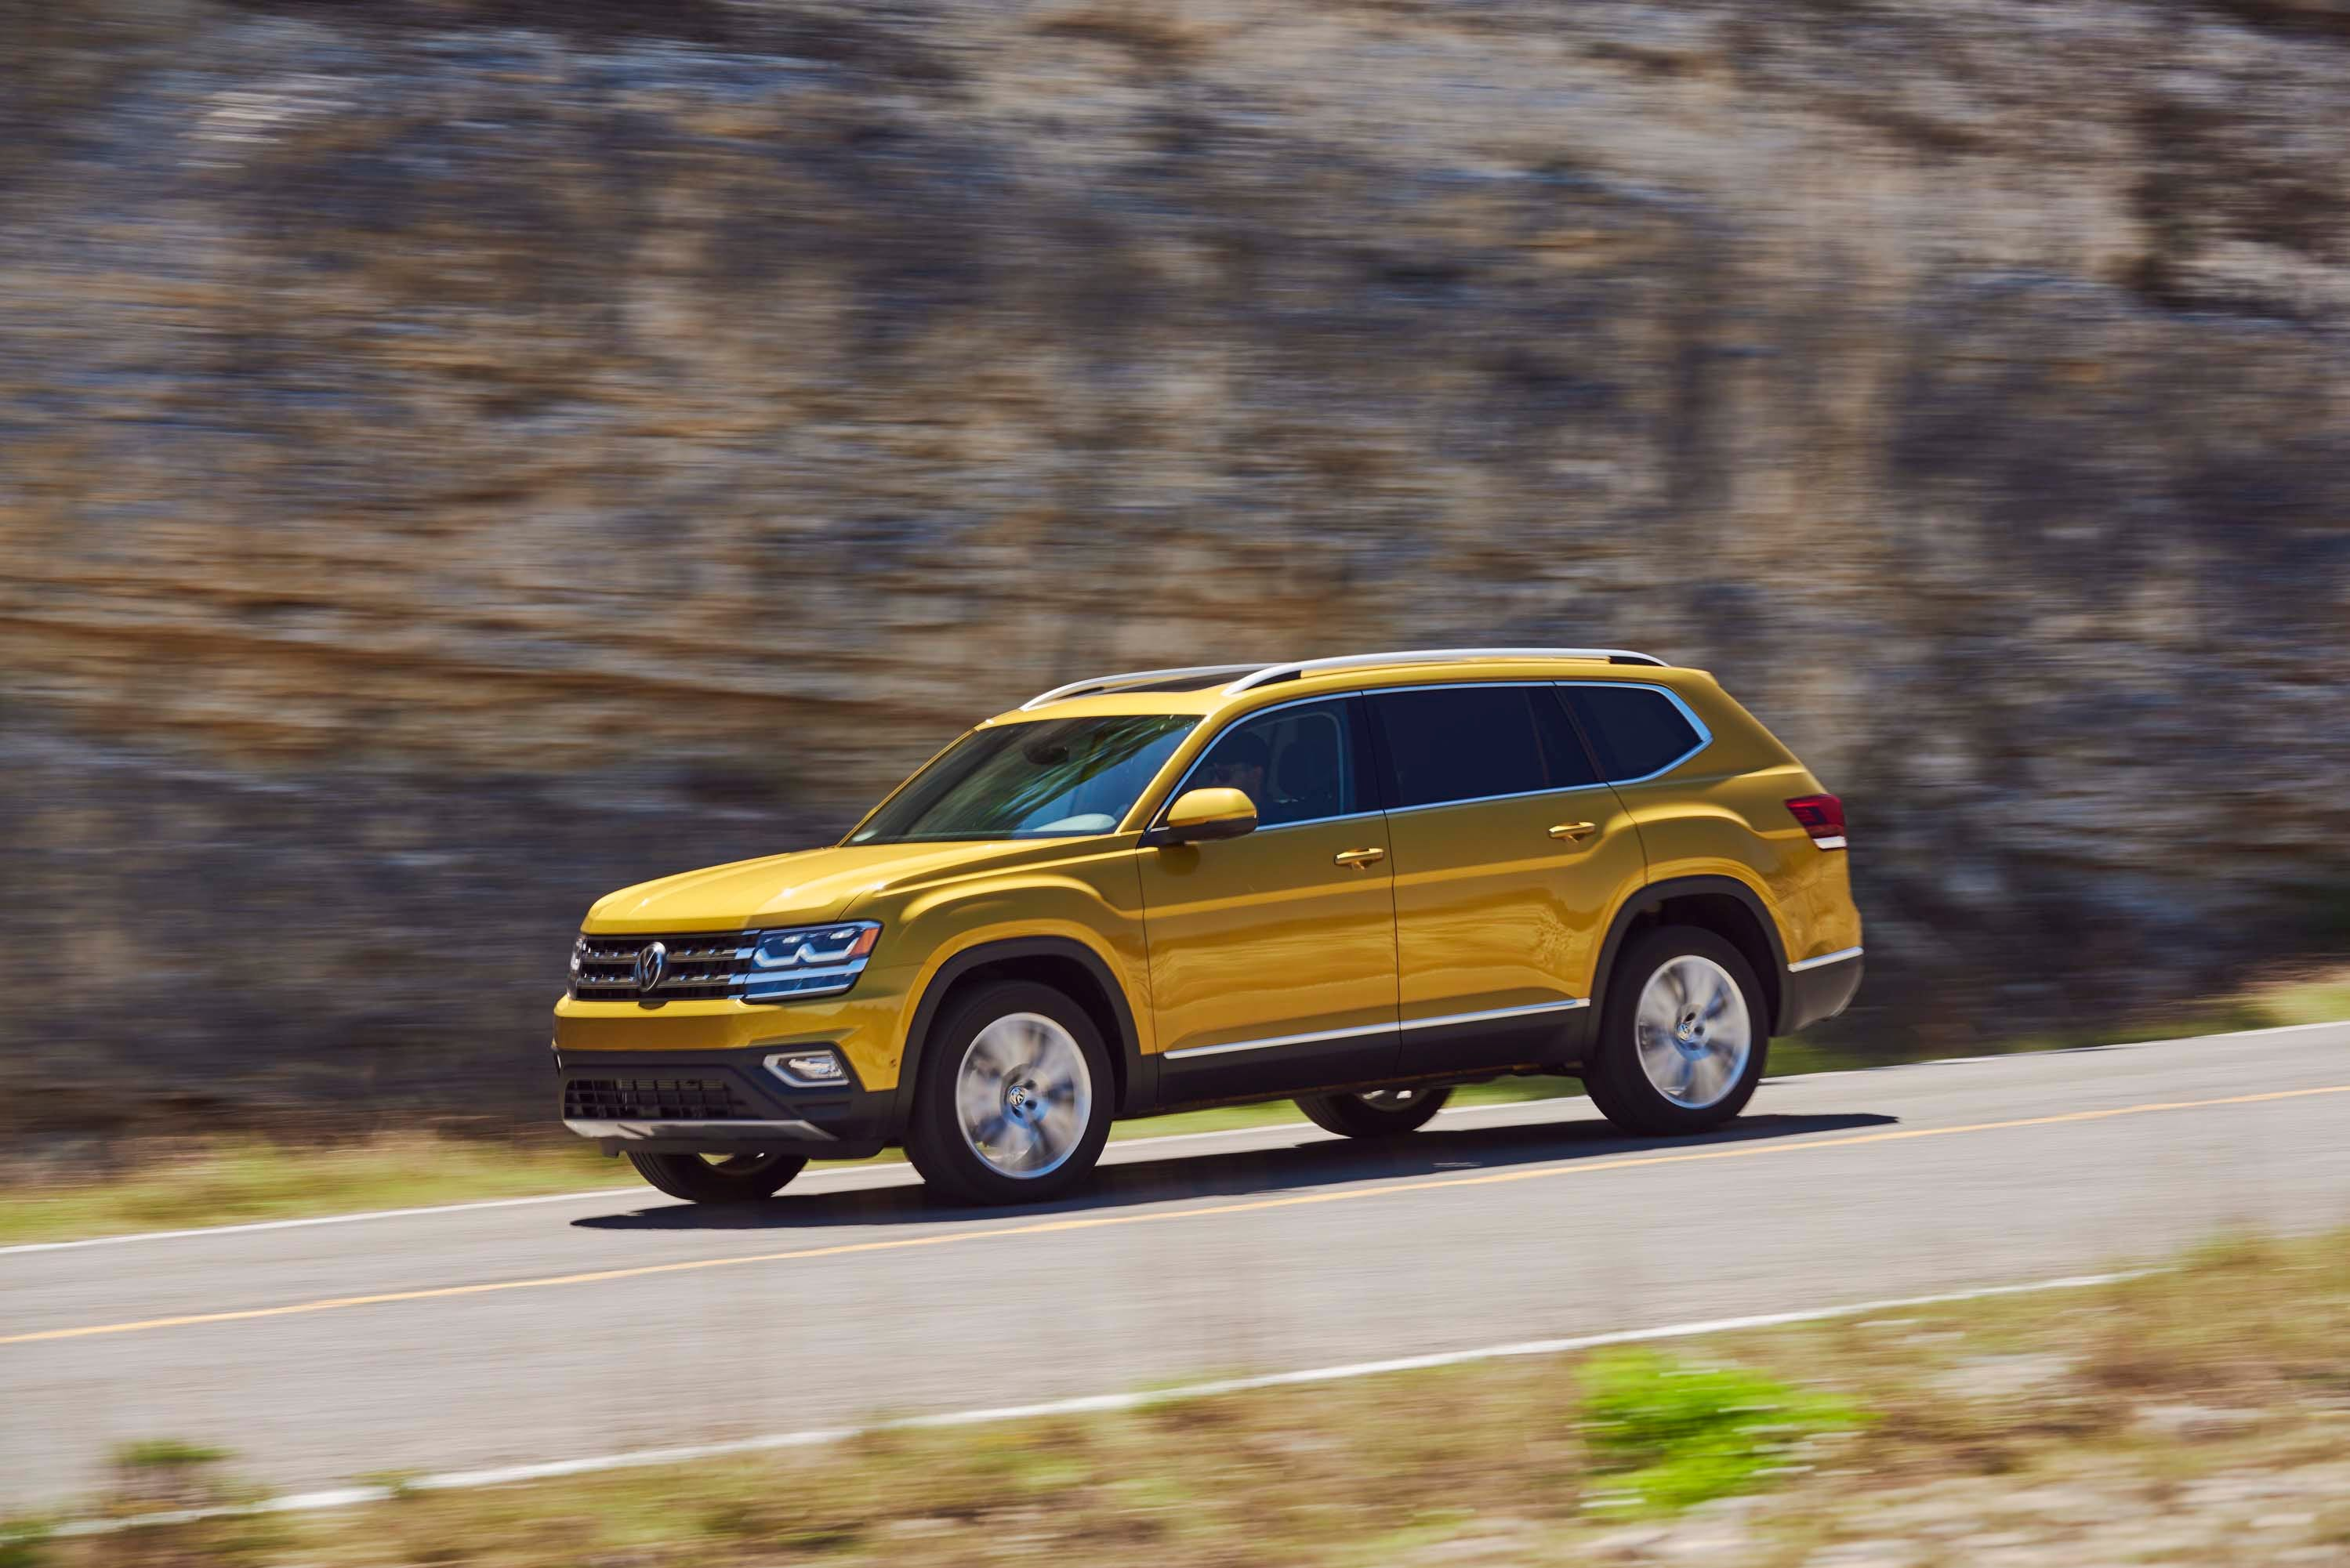 Utility of the Year nominee: The Volkswagen Atlas